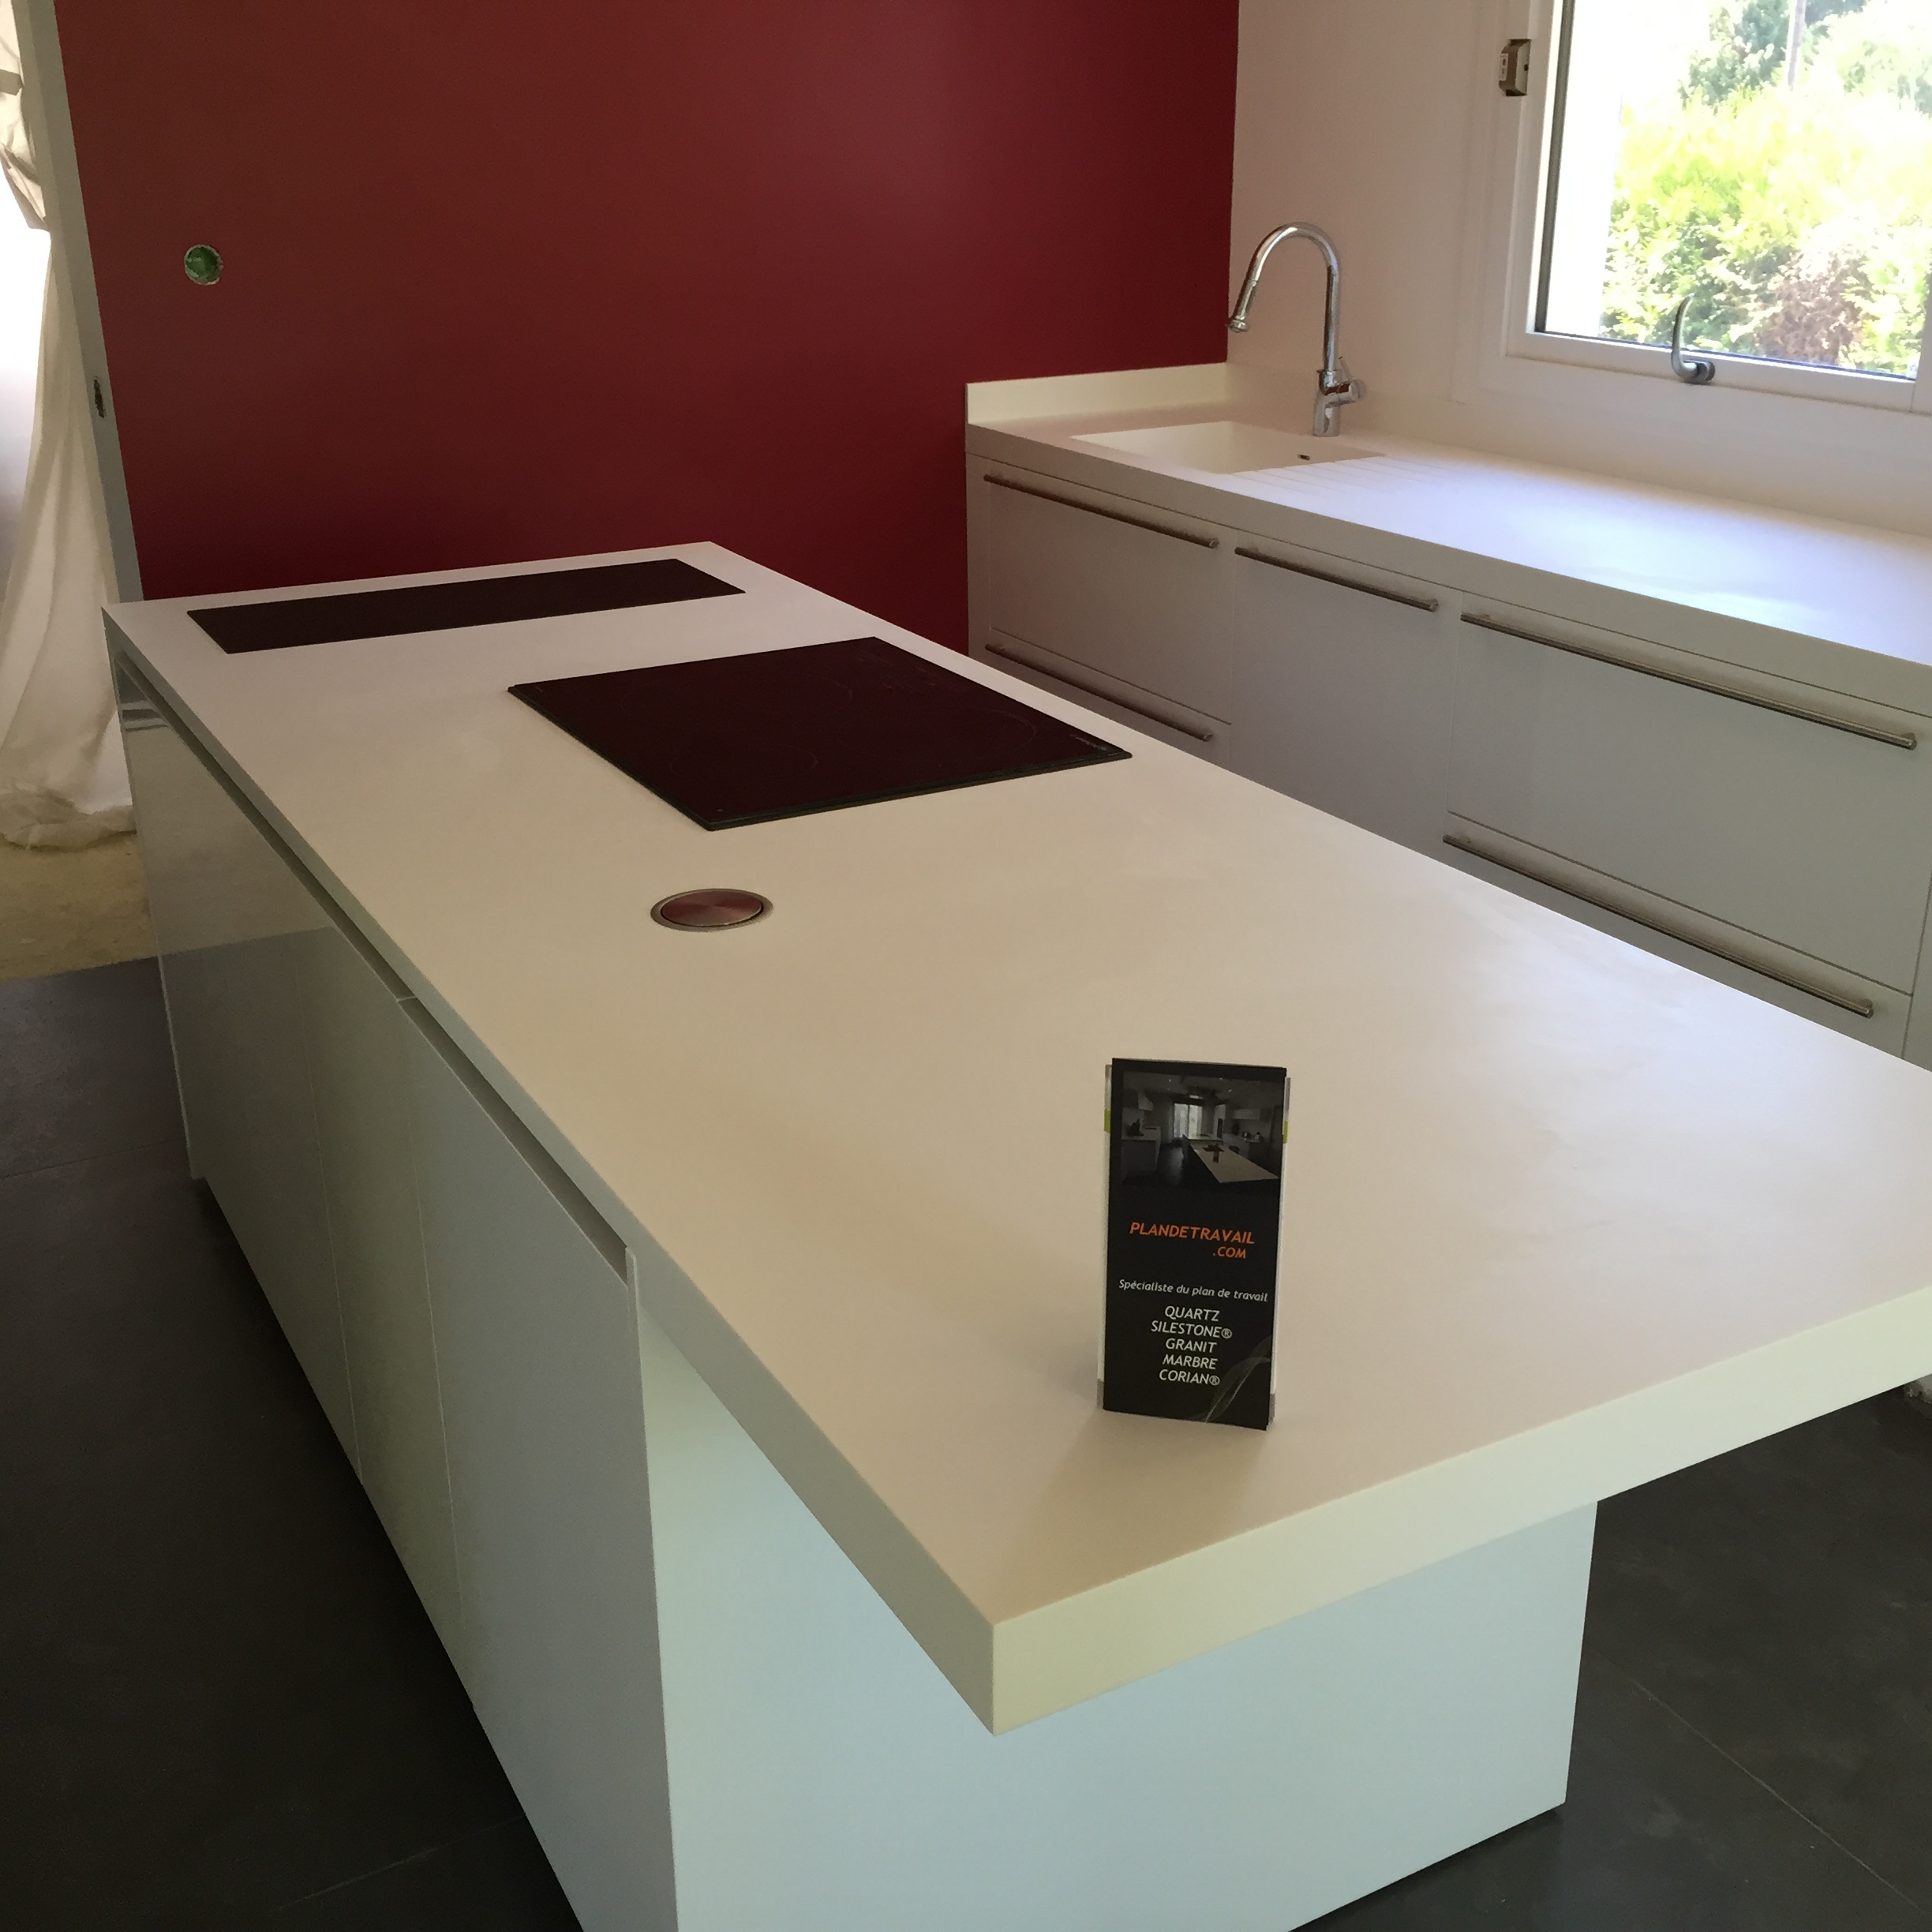 plan de travail granit quartz table en mabre paris essonne cuisine corian blanc. Black Bedroom Furniture Sets. Home Design Ideas